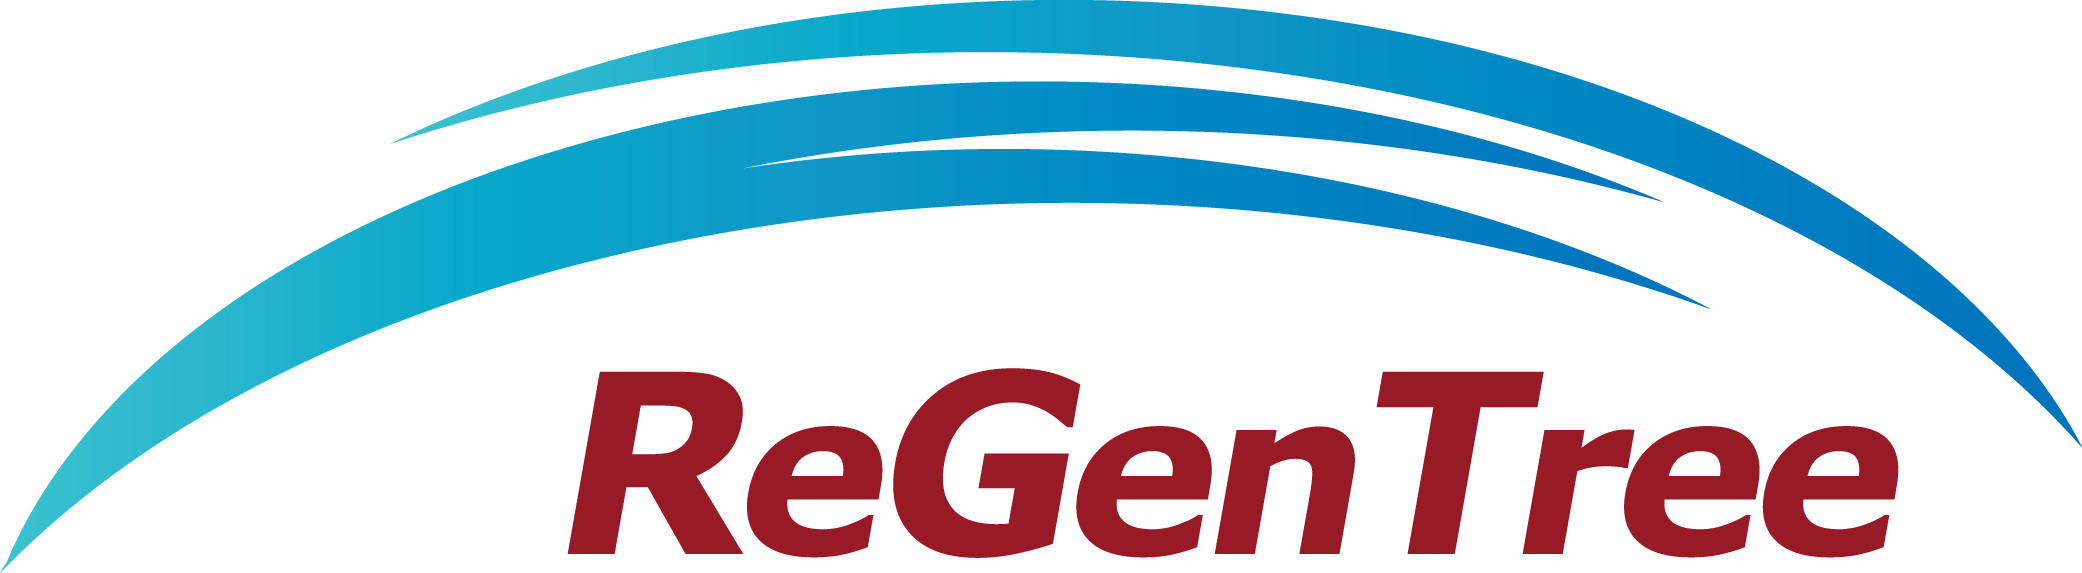 ReGenTree Announces the Results of the ARISE-2 Trial With RGN-259 for the Treatment of Dry Eye: Significant Efficacies Were Confirmed in Both Signs and Symptoms